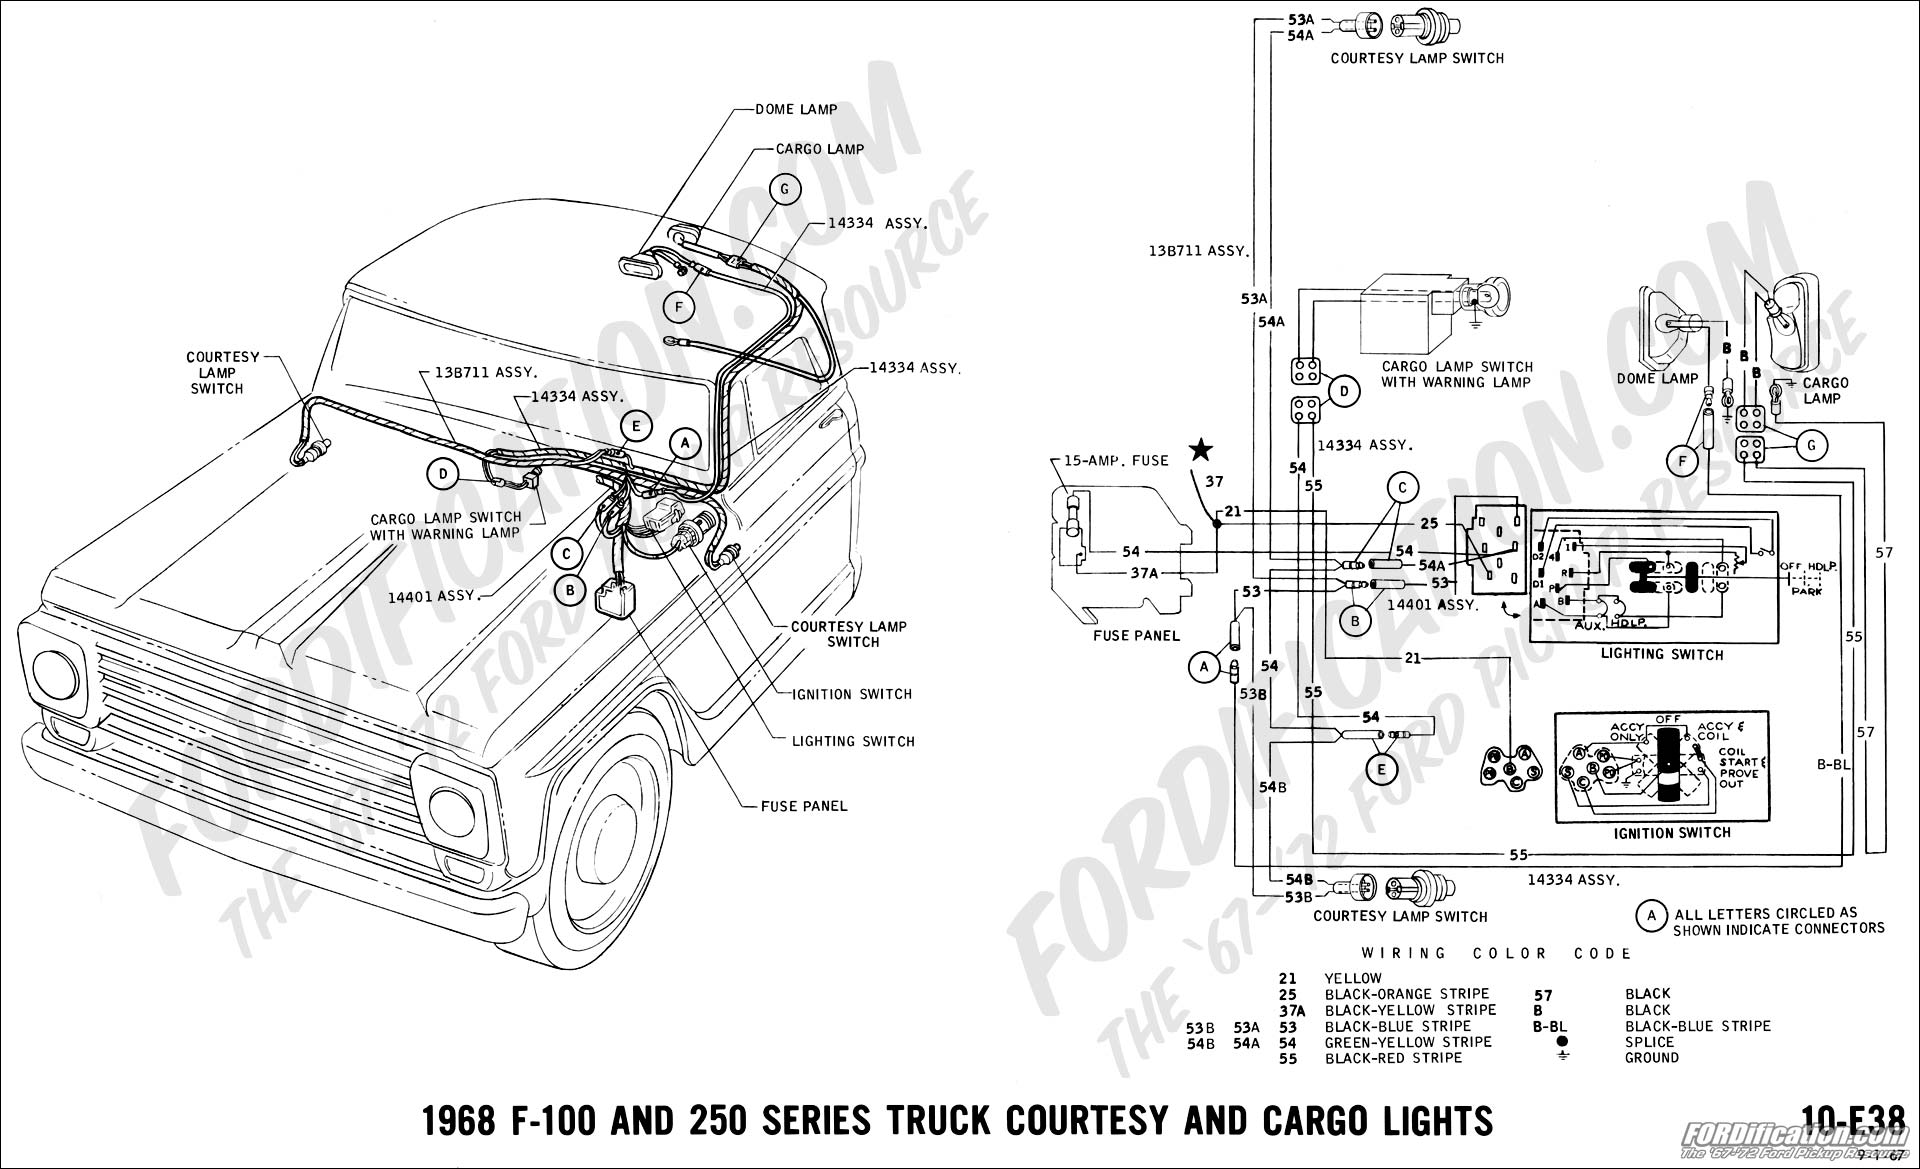 [SCHEMATICS_4JK]  CA97A1 68 Ford Bronco Wiring Diagram | Wiring Resources | Vox Generator Vxg6500 Wiring Diagram |  | Wiring Resources